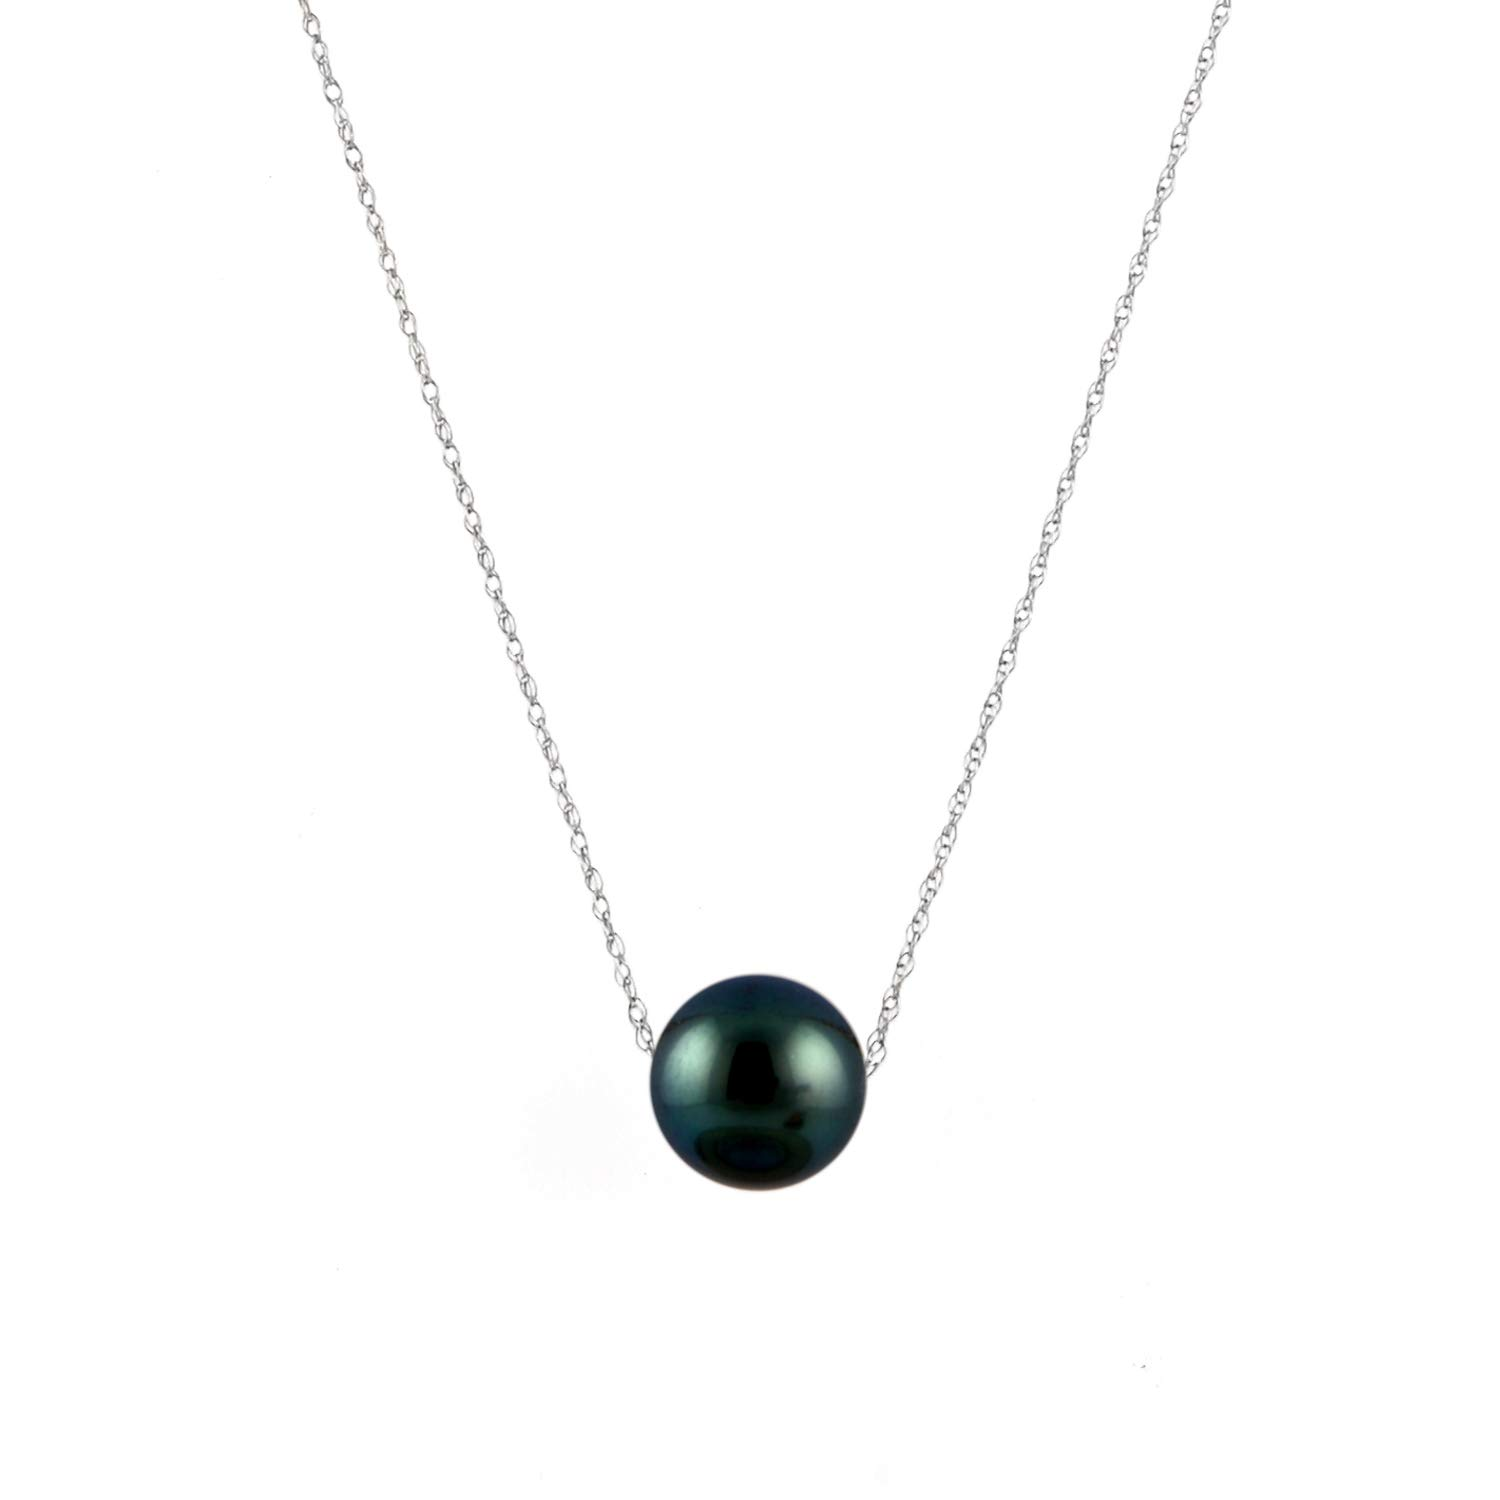 14K Gold 8-9mm Tahitian South Sea Cultured Floating Pearl Tin Cup Chain Necklace Jewelry for Women 17''